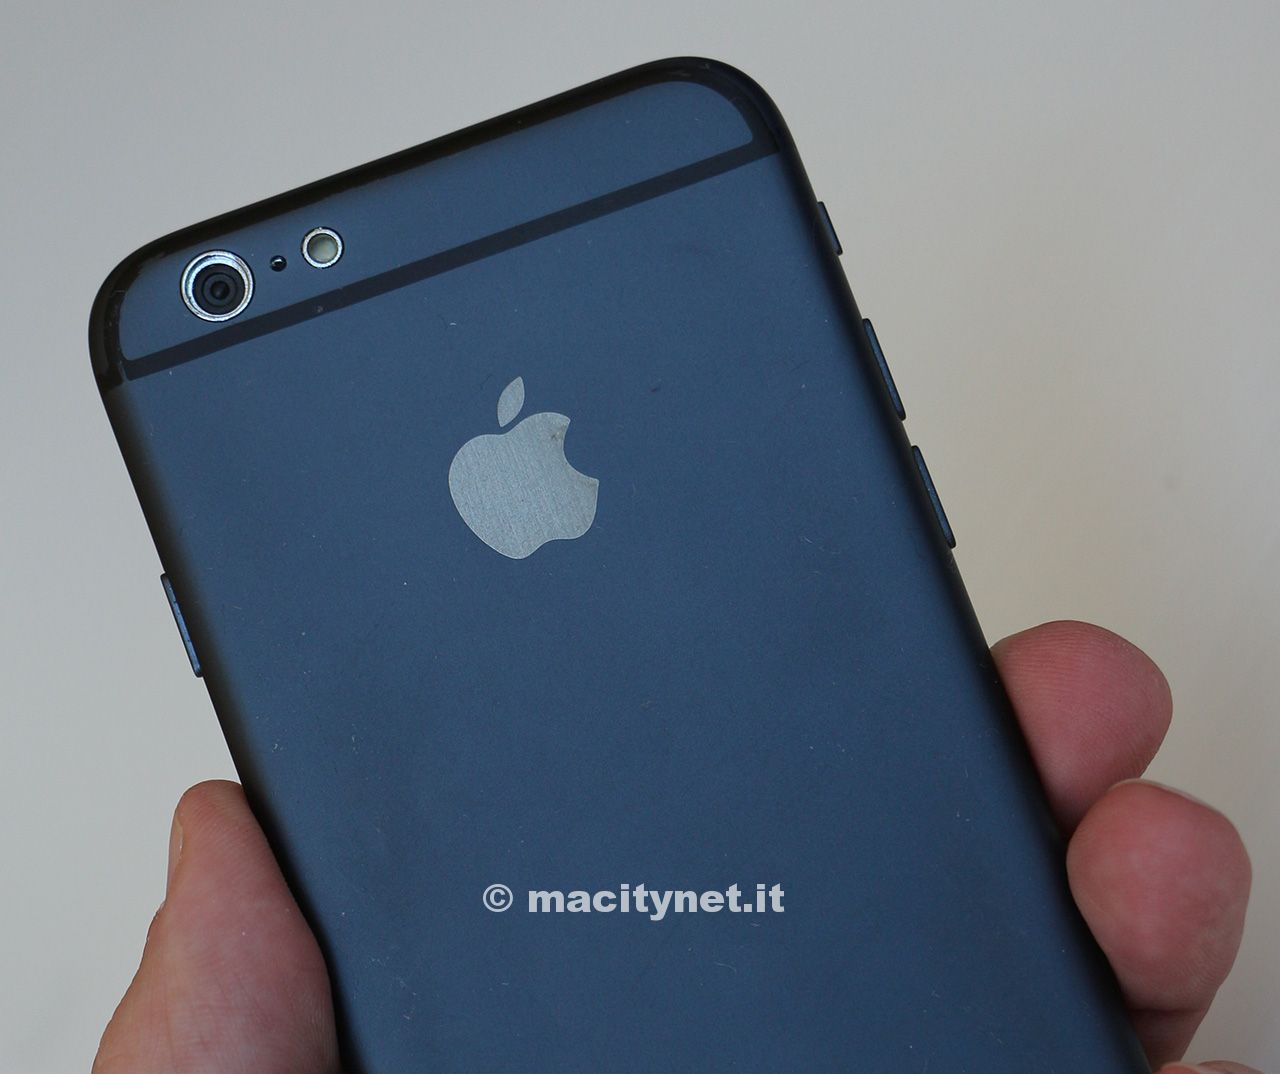 iPhone 6 vs iPod touch 5G